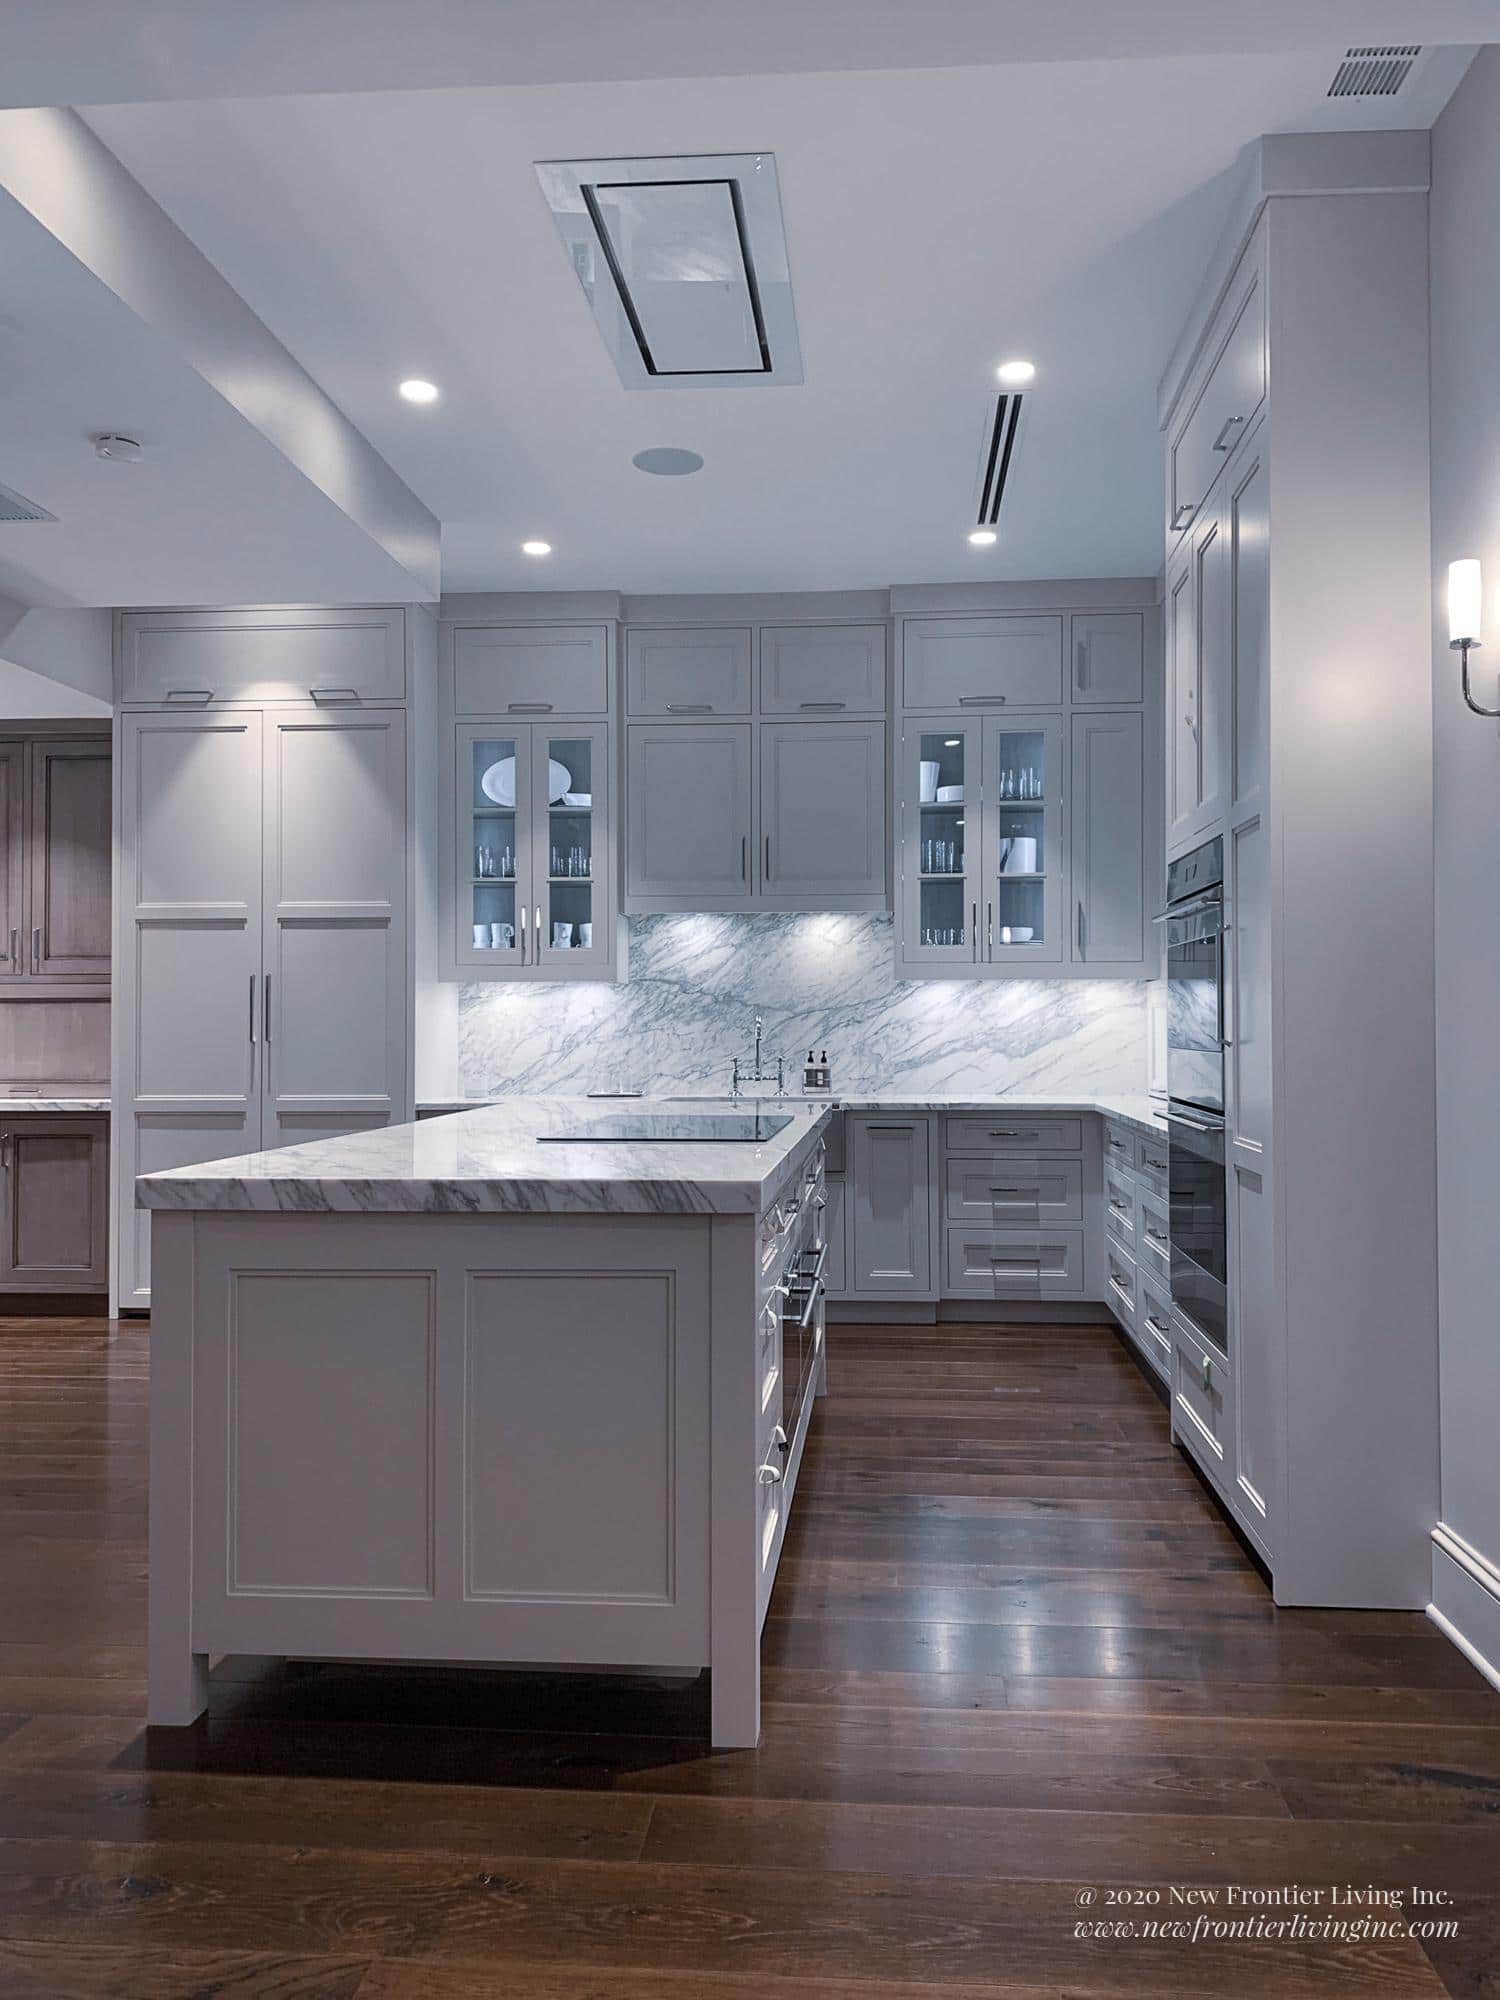 Pure white kitchen cabinetry and an island with semi-glass upper cabinets and silver handles